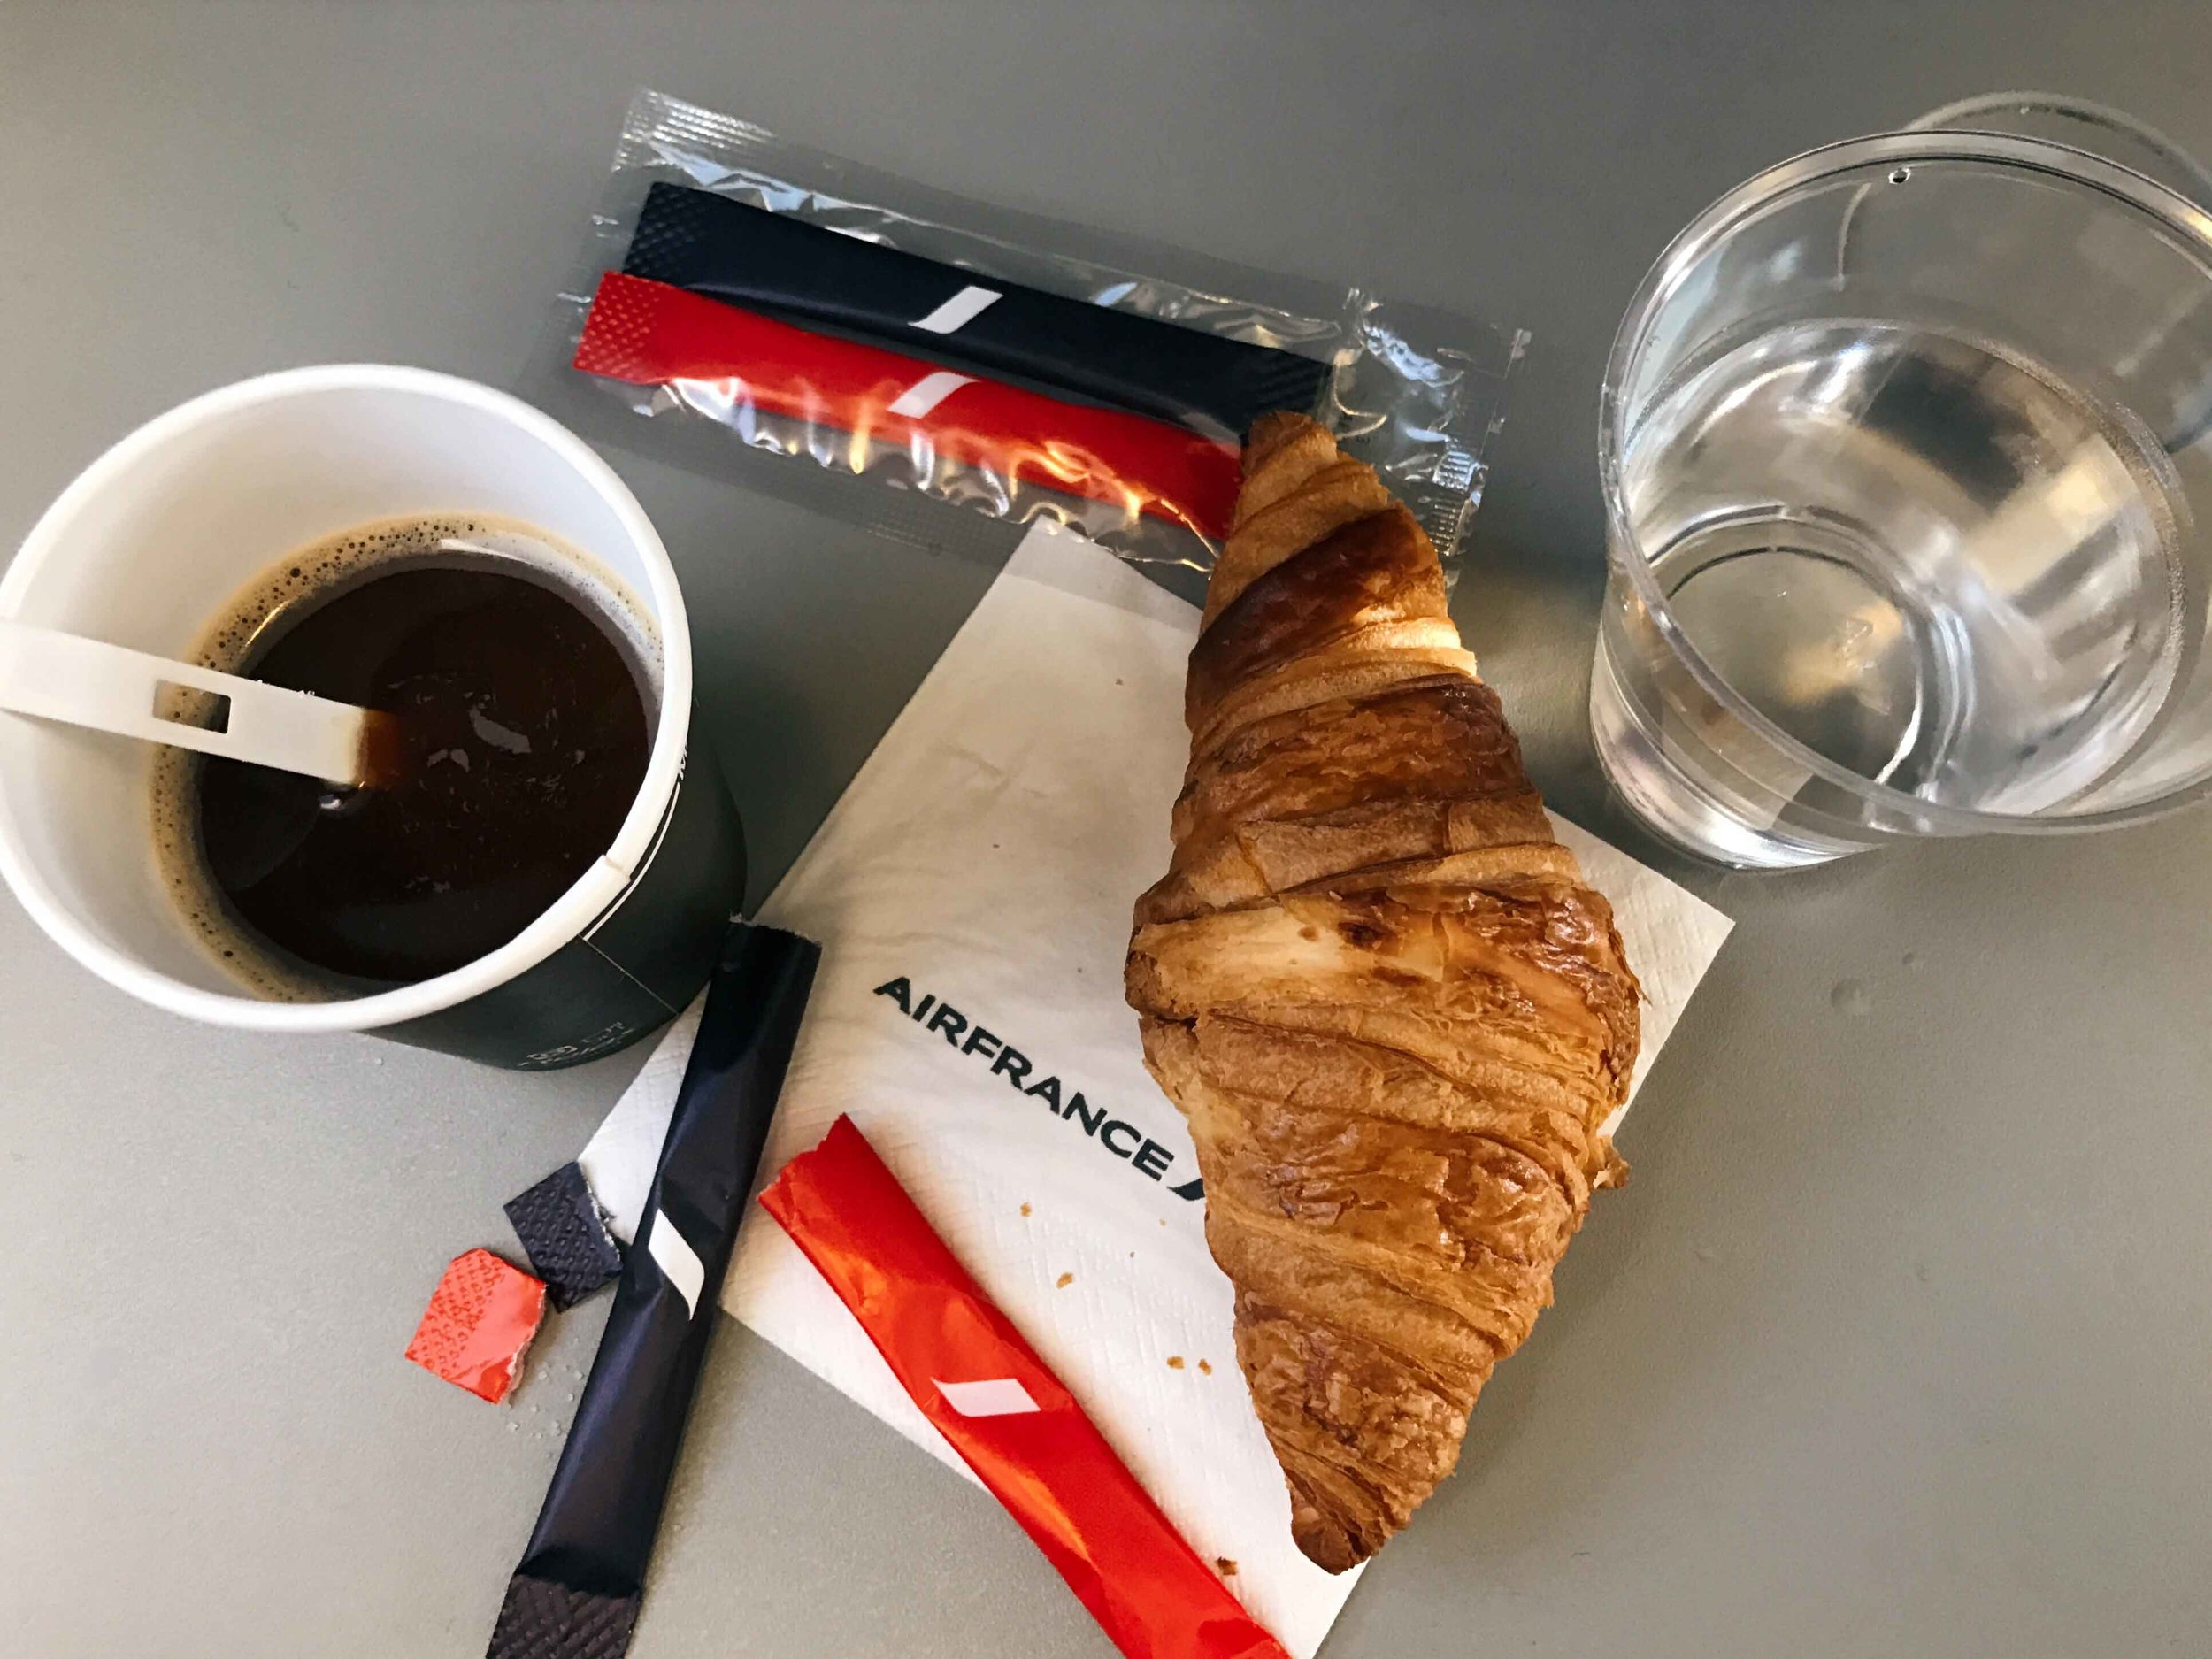 Air France Embraer, Paris to Oslo, snacks. Image©thingstodot.com